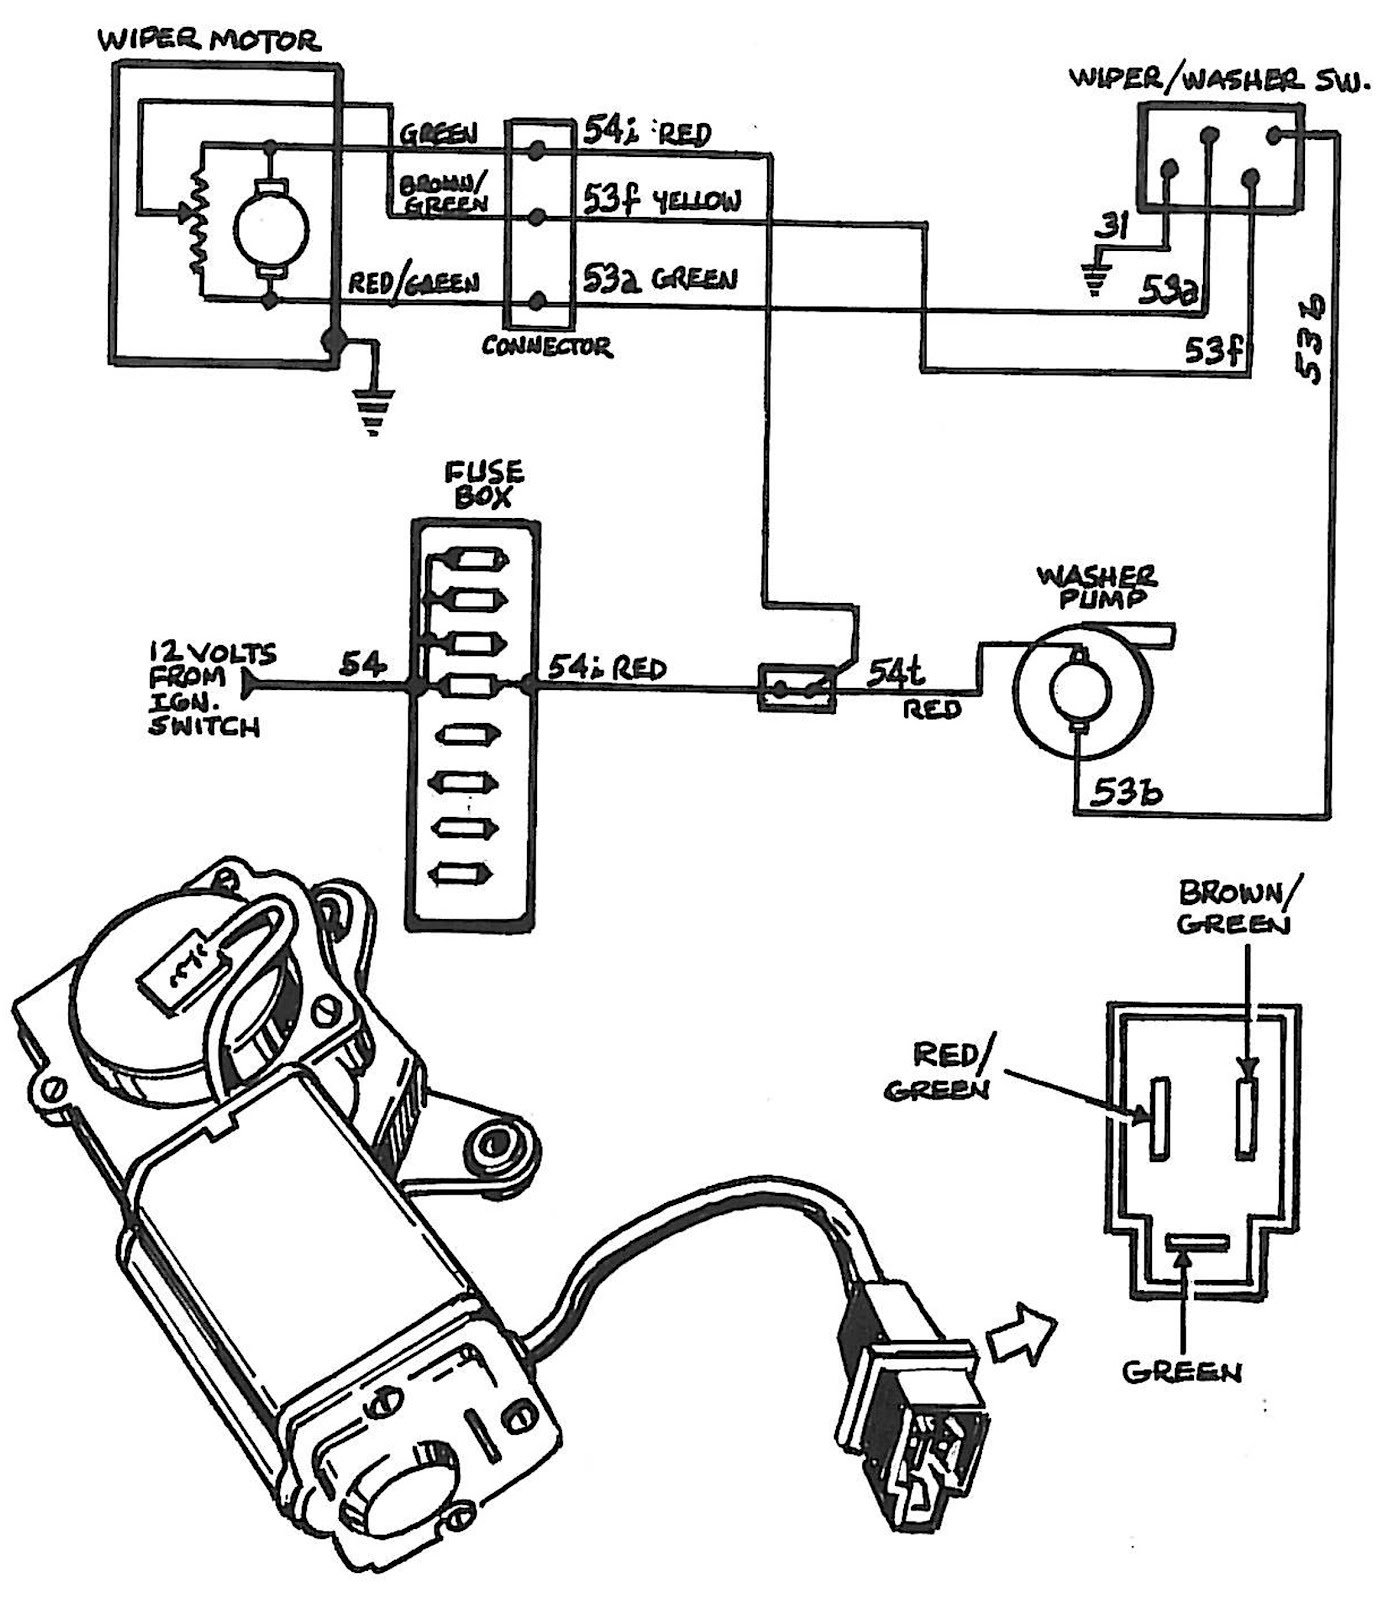 Gmc Jimmy Wiper Wiring Diagram - Wiring Diagram Show path-edition -  path-edition.bilancestube.it | Windshield Wiper Wiring Diagrams 86 Jimmy |  | path-edition.bilancestube.it